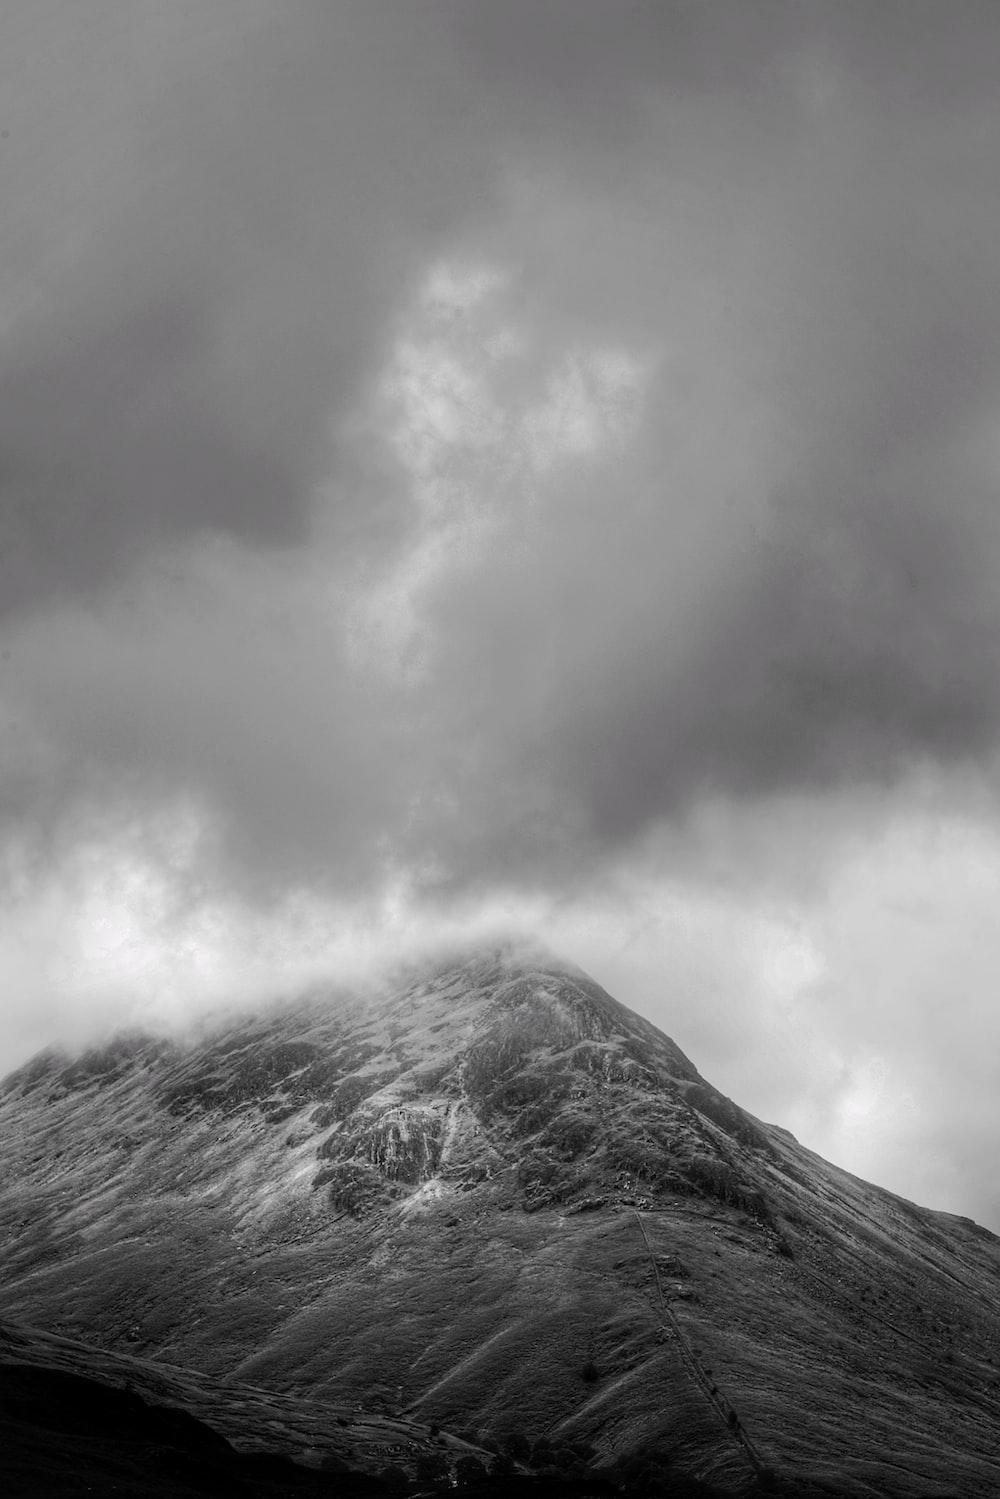 grayscale photography of mountain covered with fogs